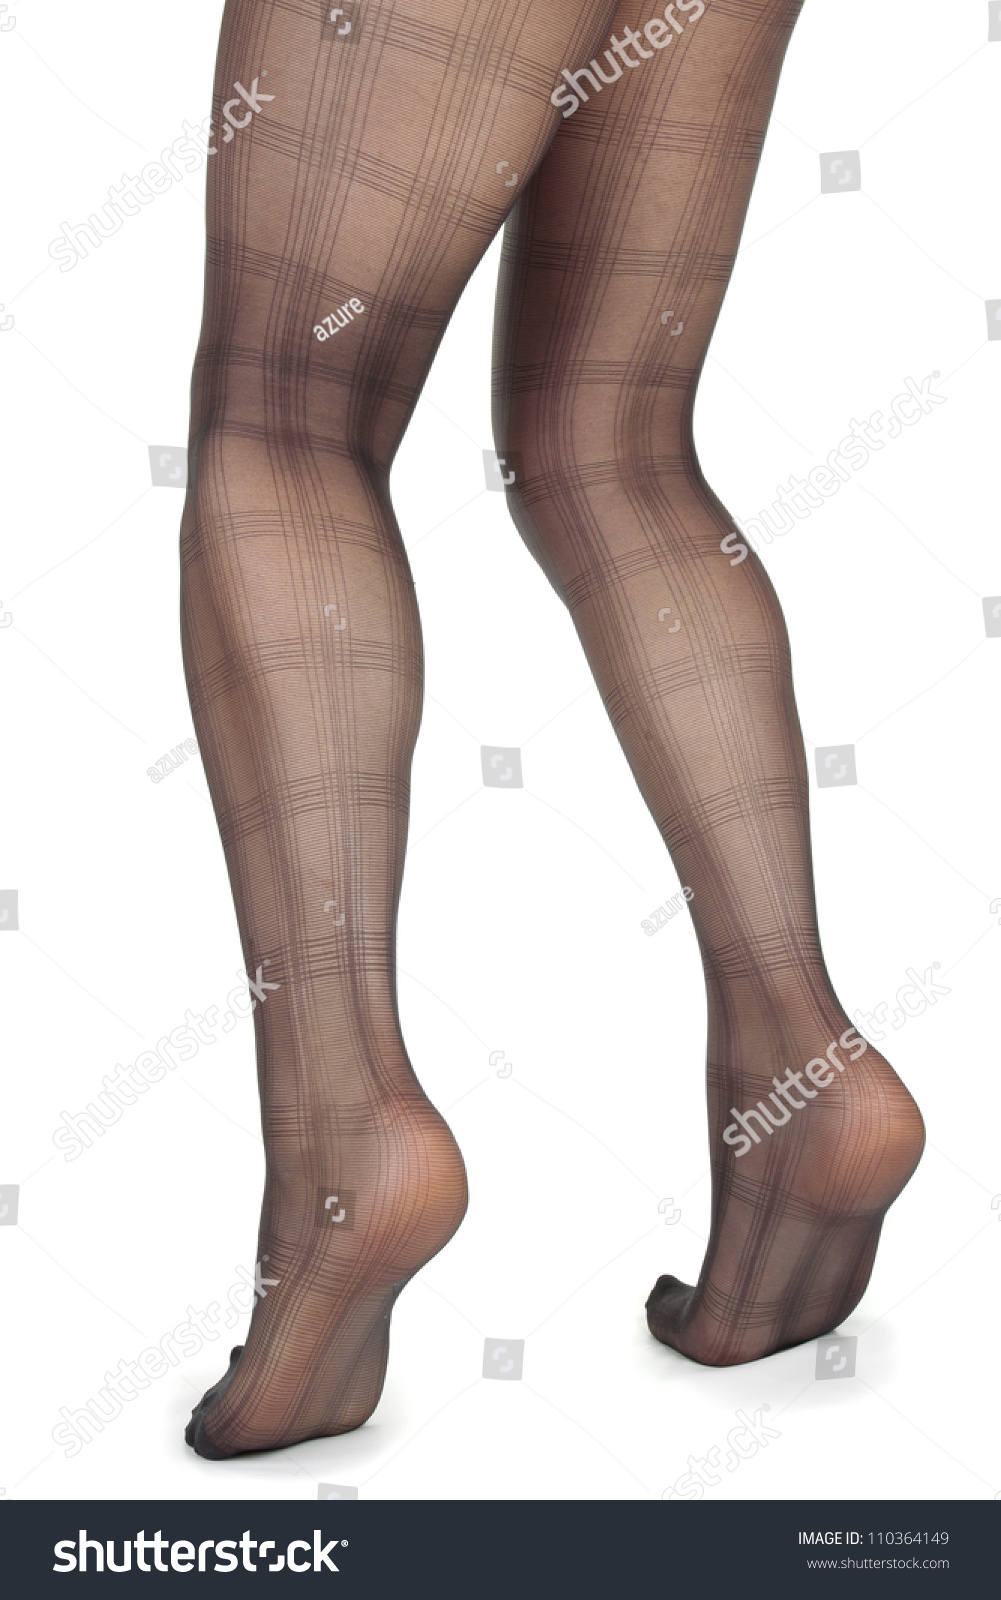 33c4f98e5 Woman Legs Wearing Black Lace Tights Stock Photo (Edit Now ...